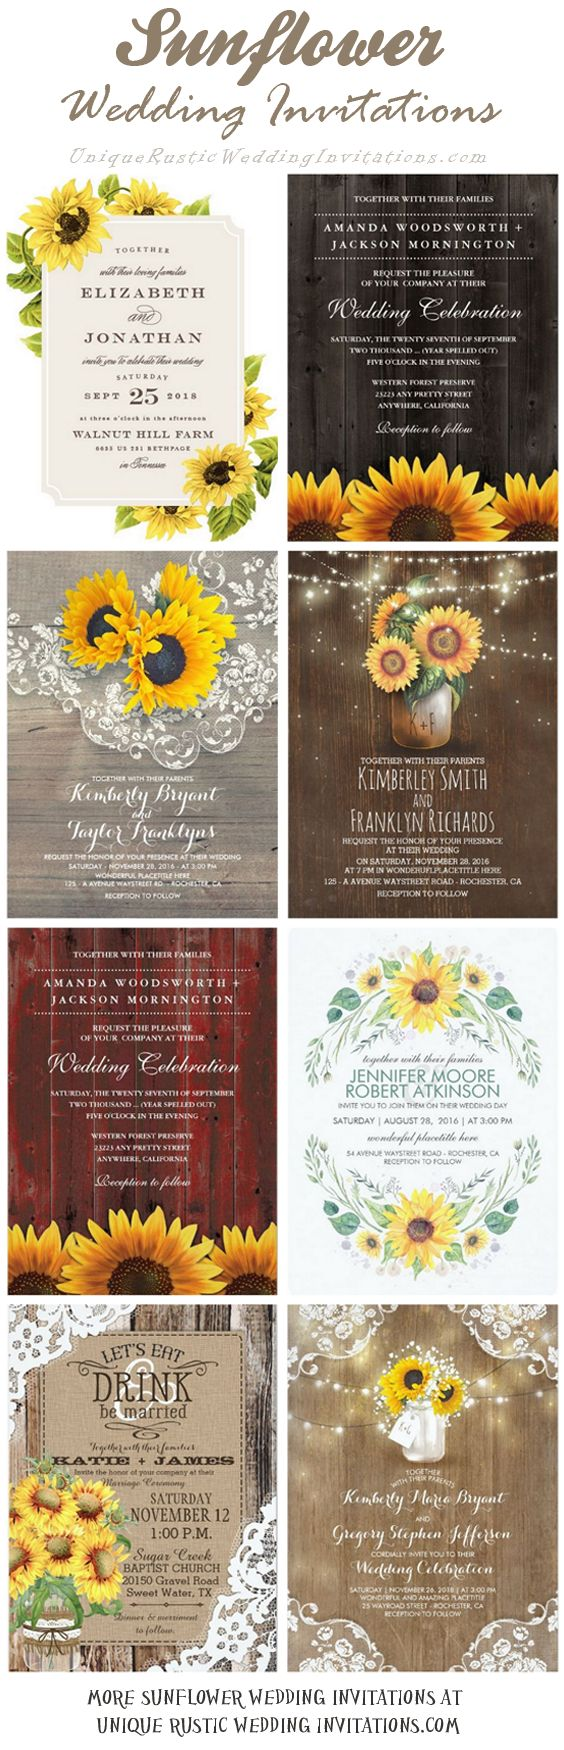 220 Best Rustic Wedding Invitations Images On Pinterest